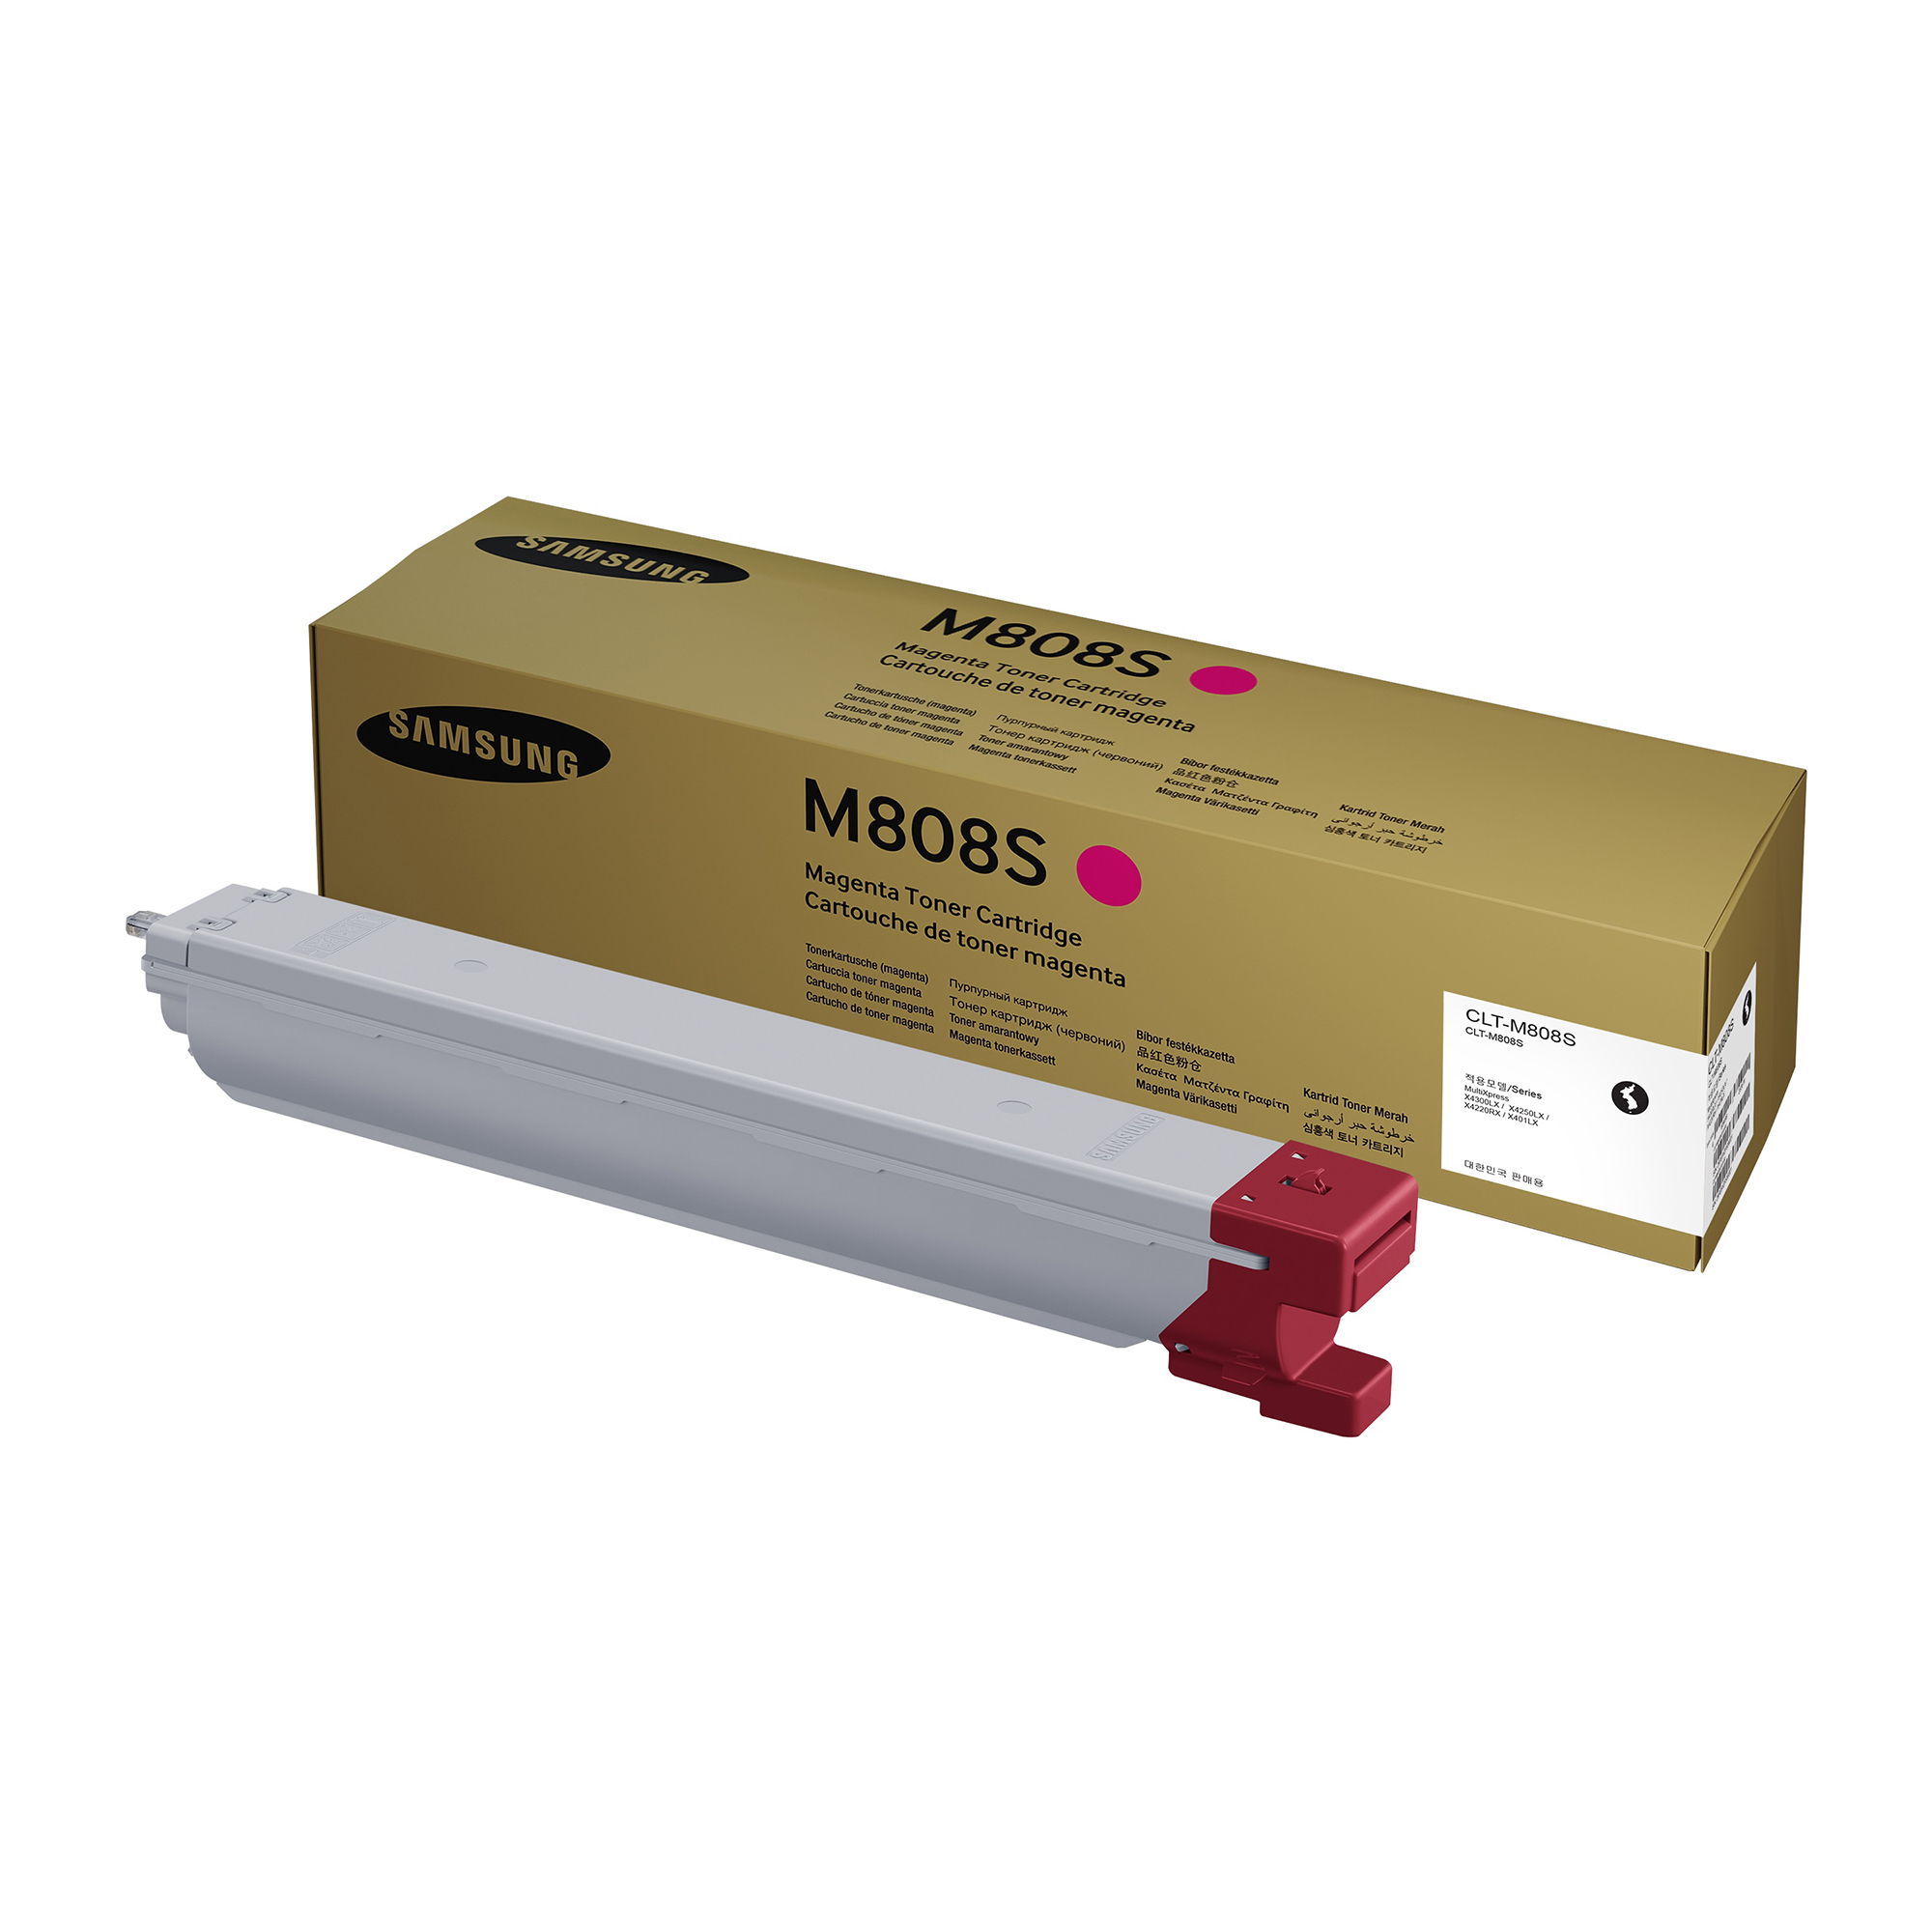 Samsung CLT-M808S Laser Toner Cartridge Page Life 20000pp Magenta Ref SS642A